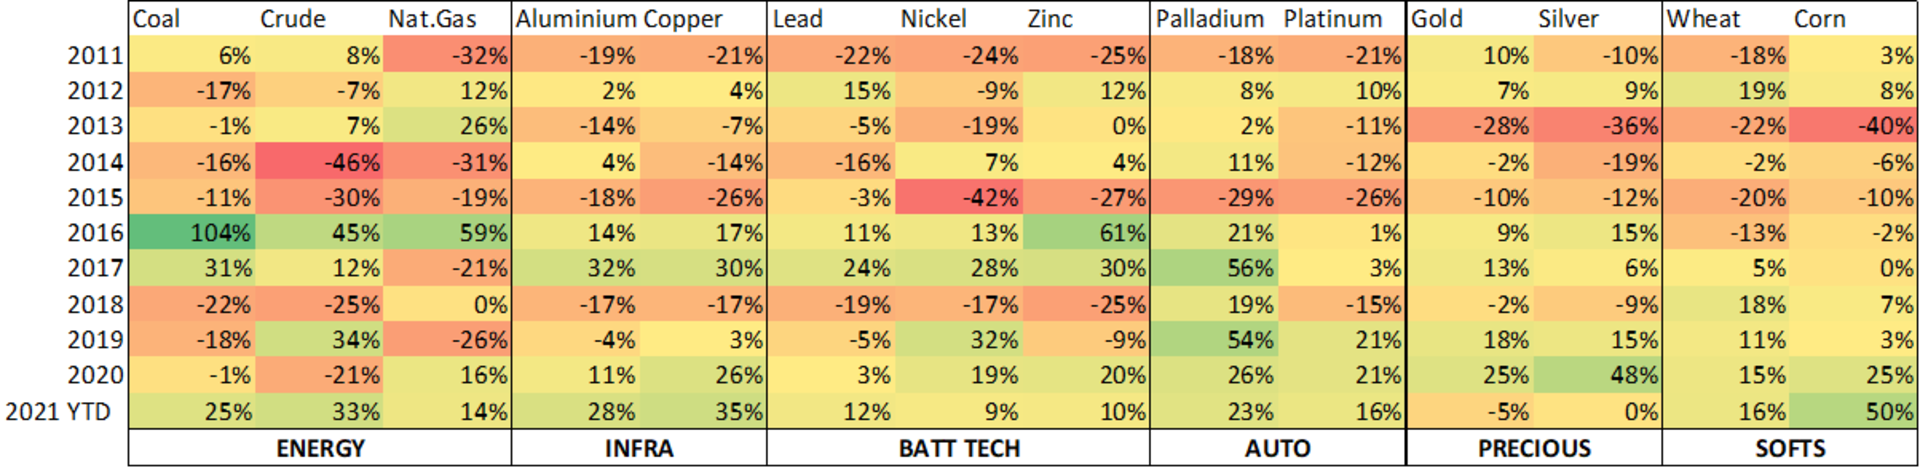 Commodity heatmap unsorted